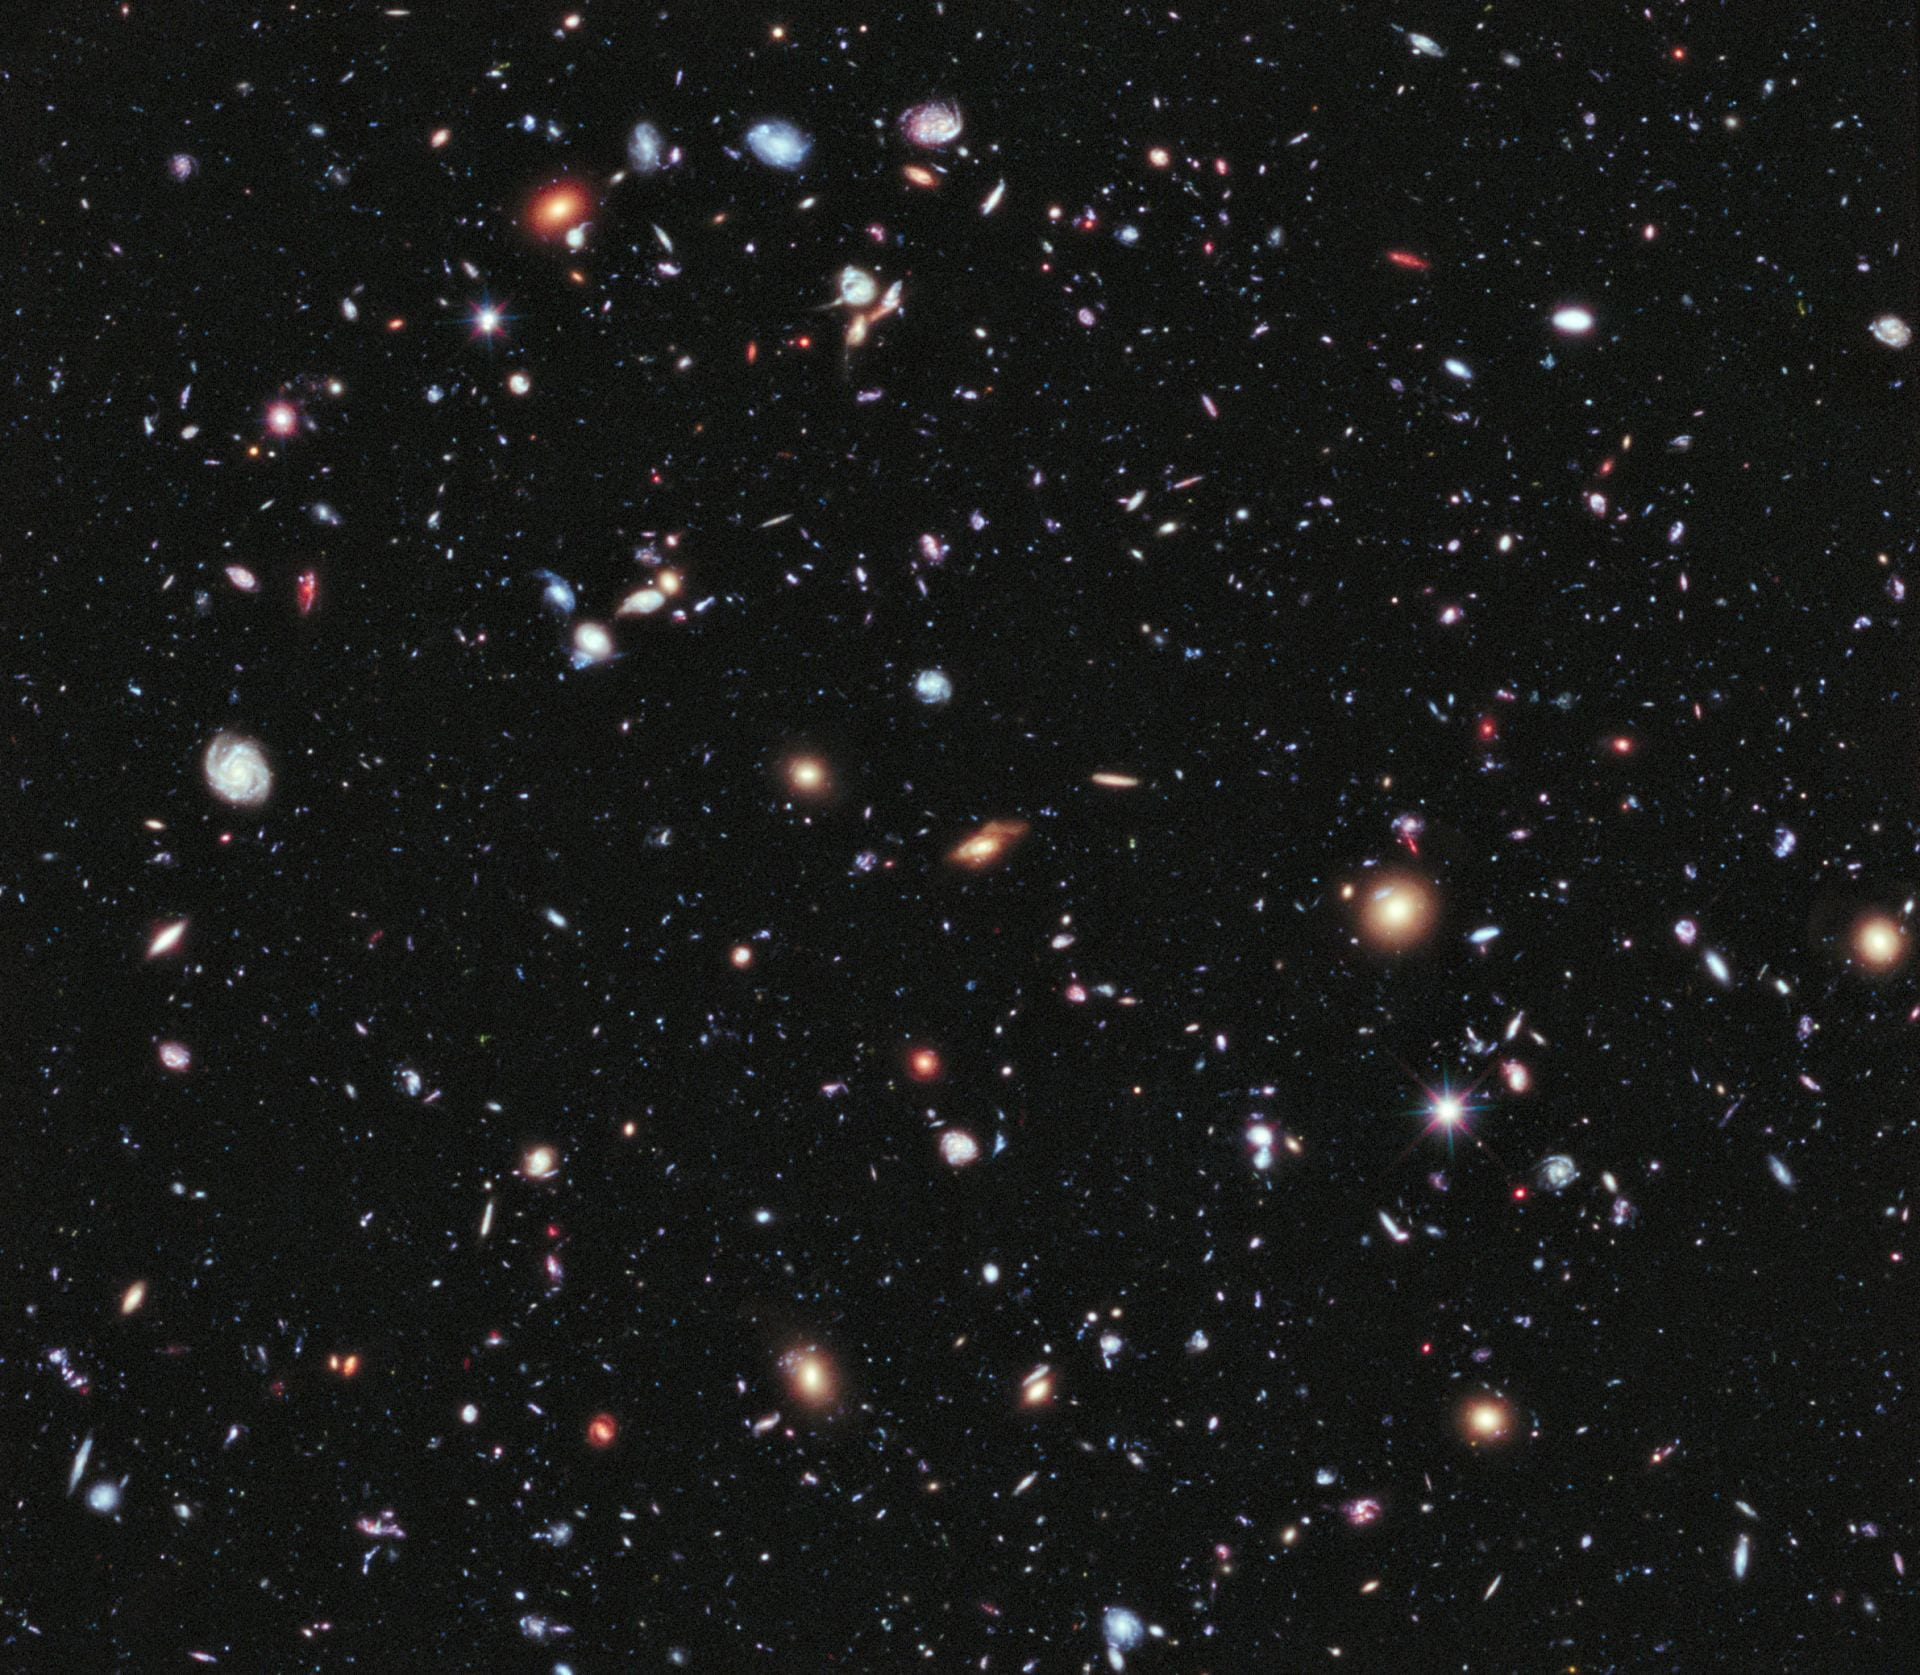 Several hundred galaxies of all shapes and colors shine against a black background.